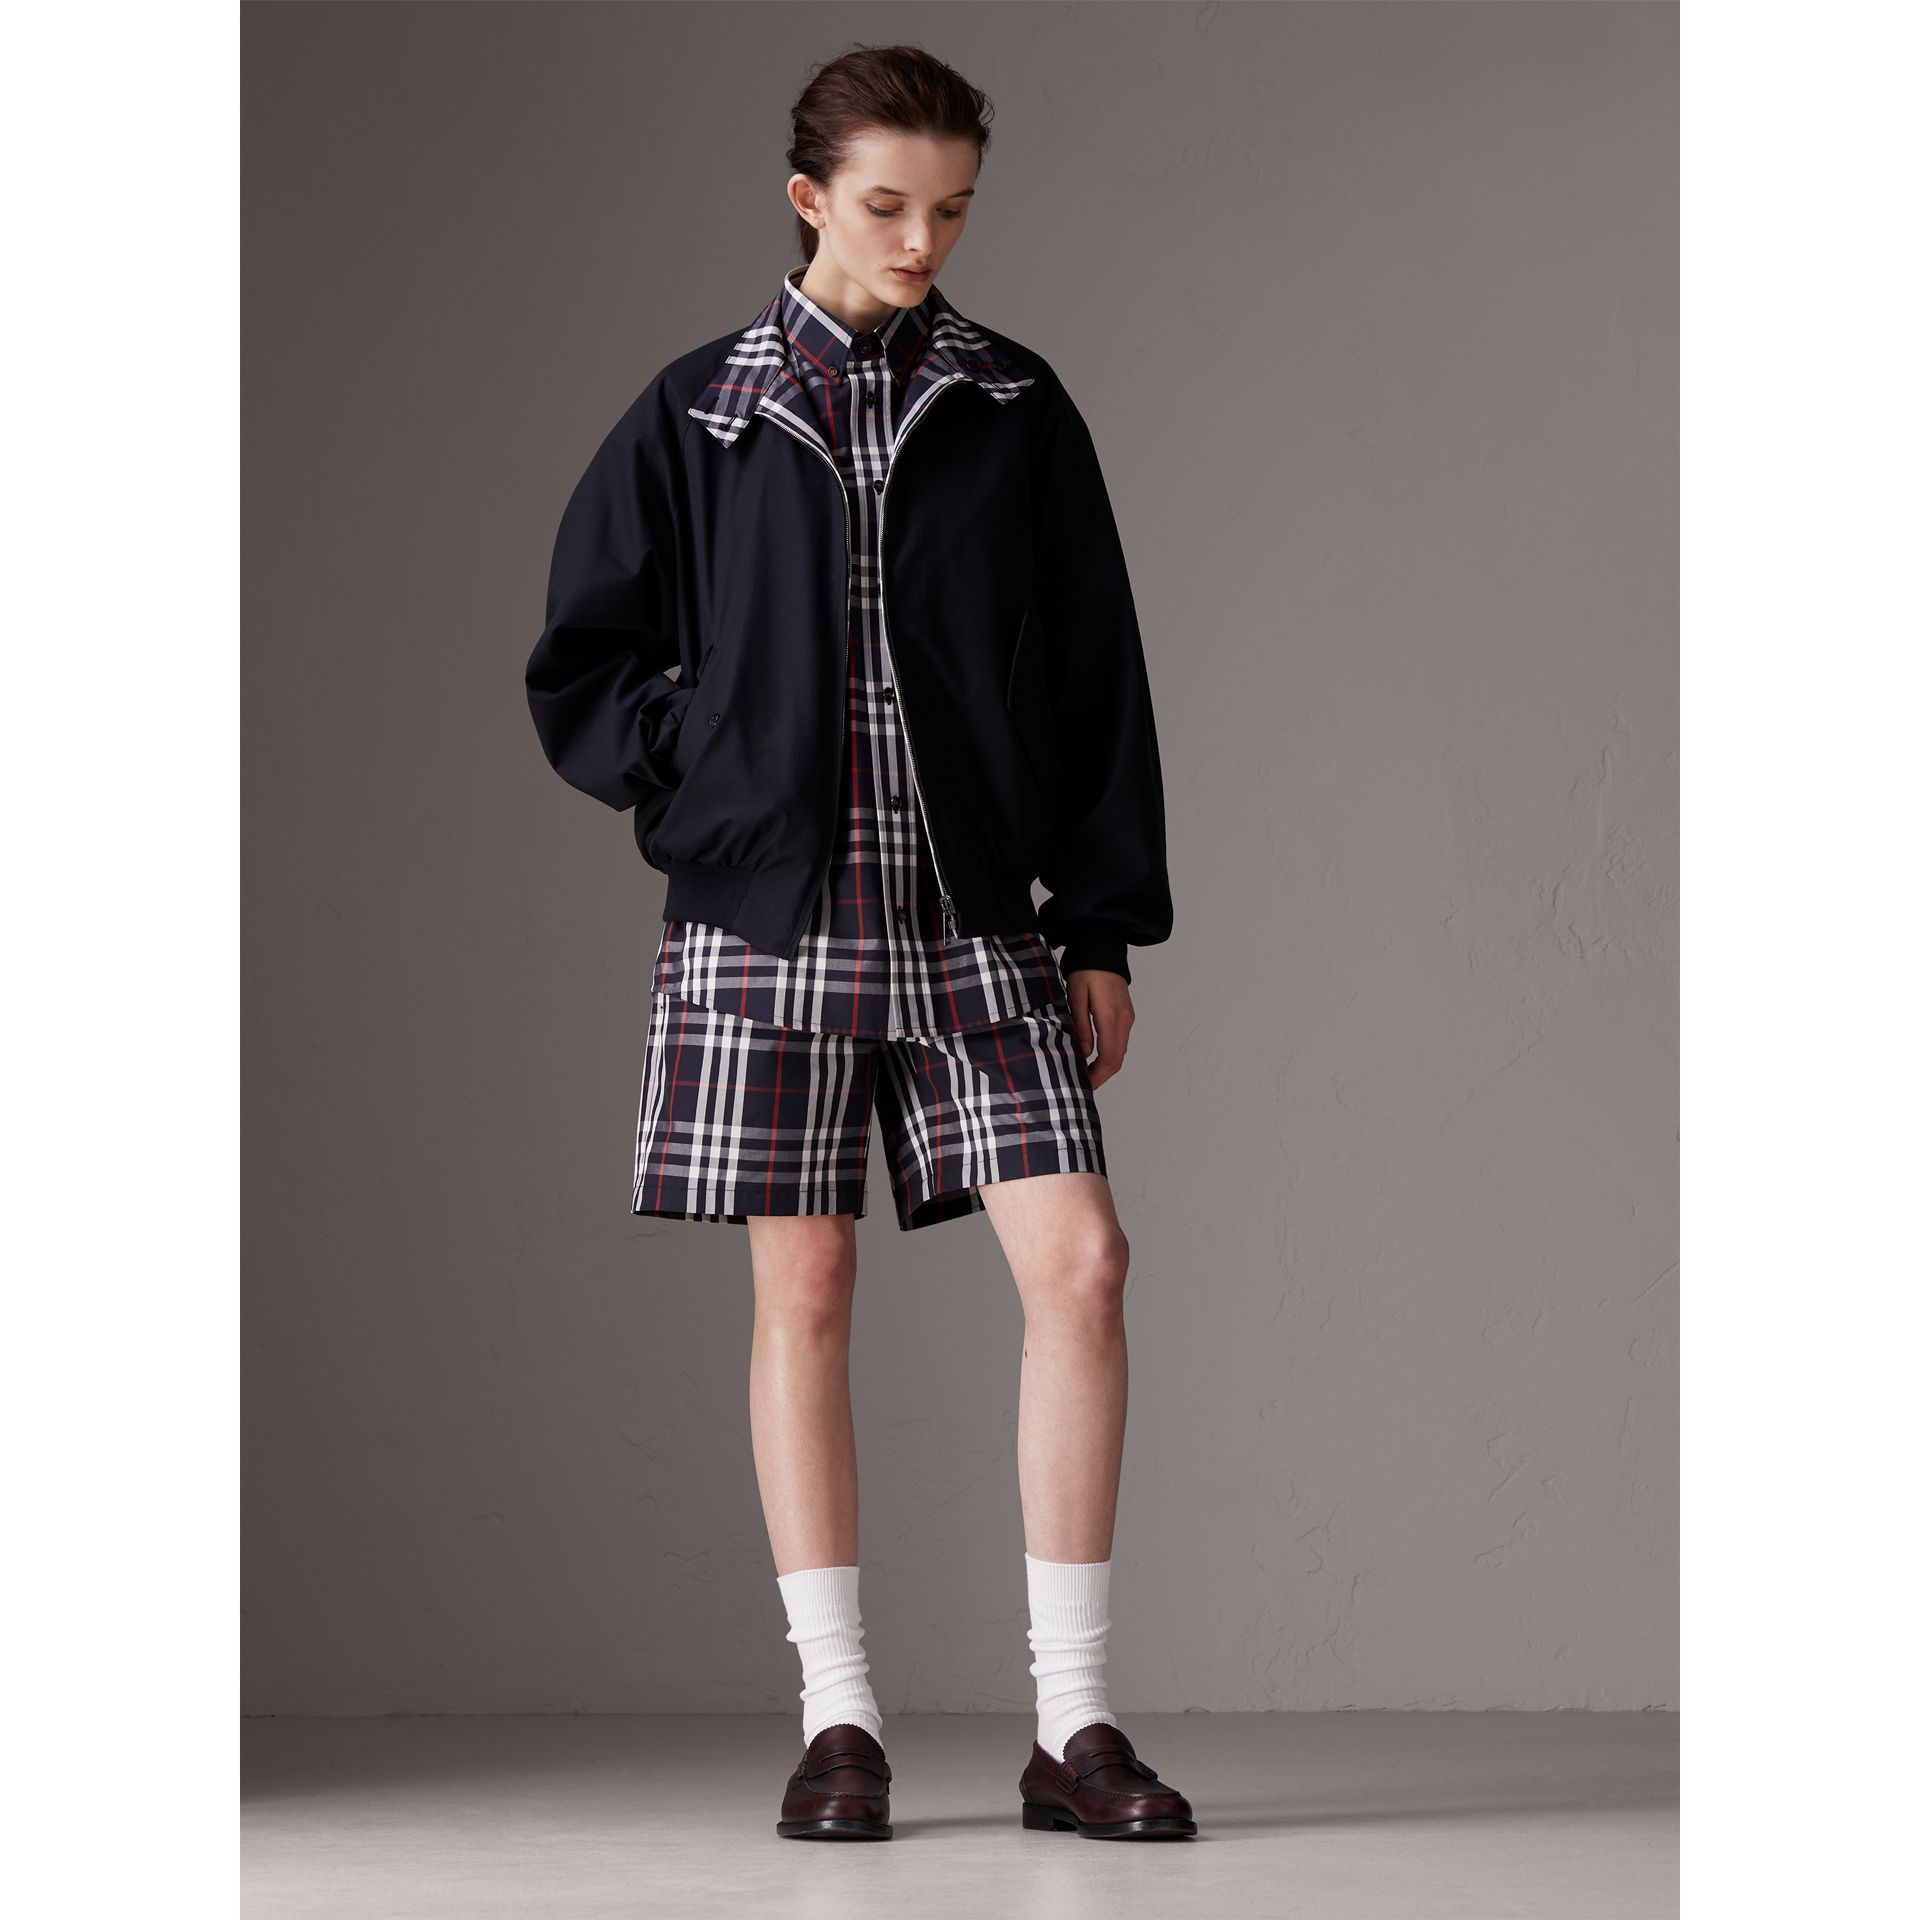 Gosha x Burberry Reversible Harrington Jacket in Navy | Burberry - gallery image 3